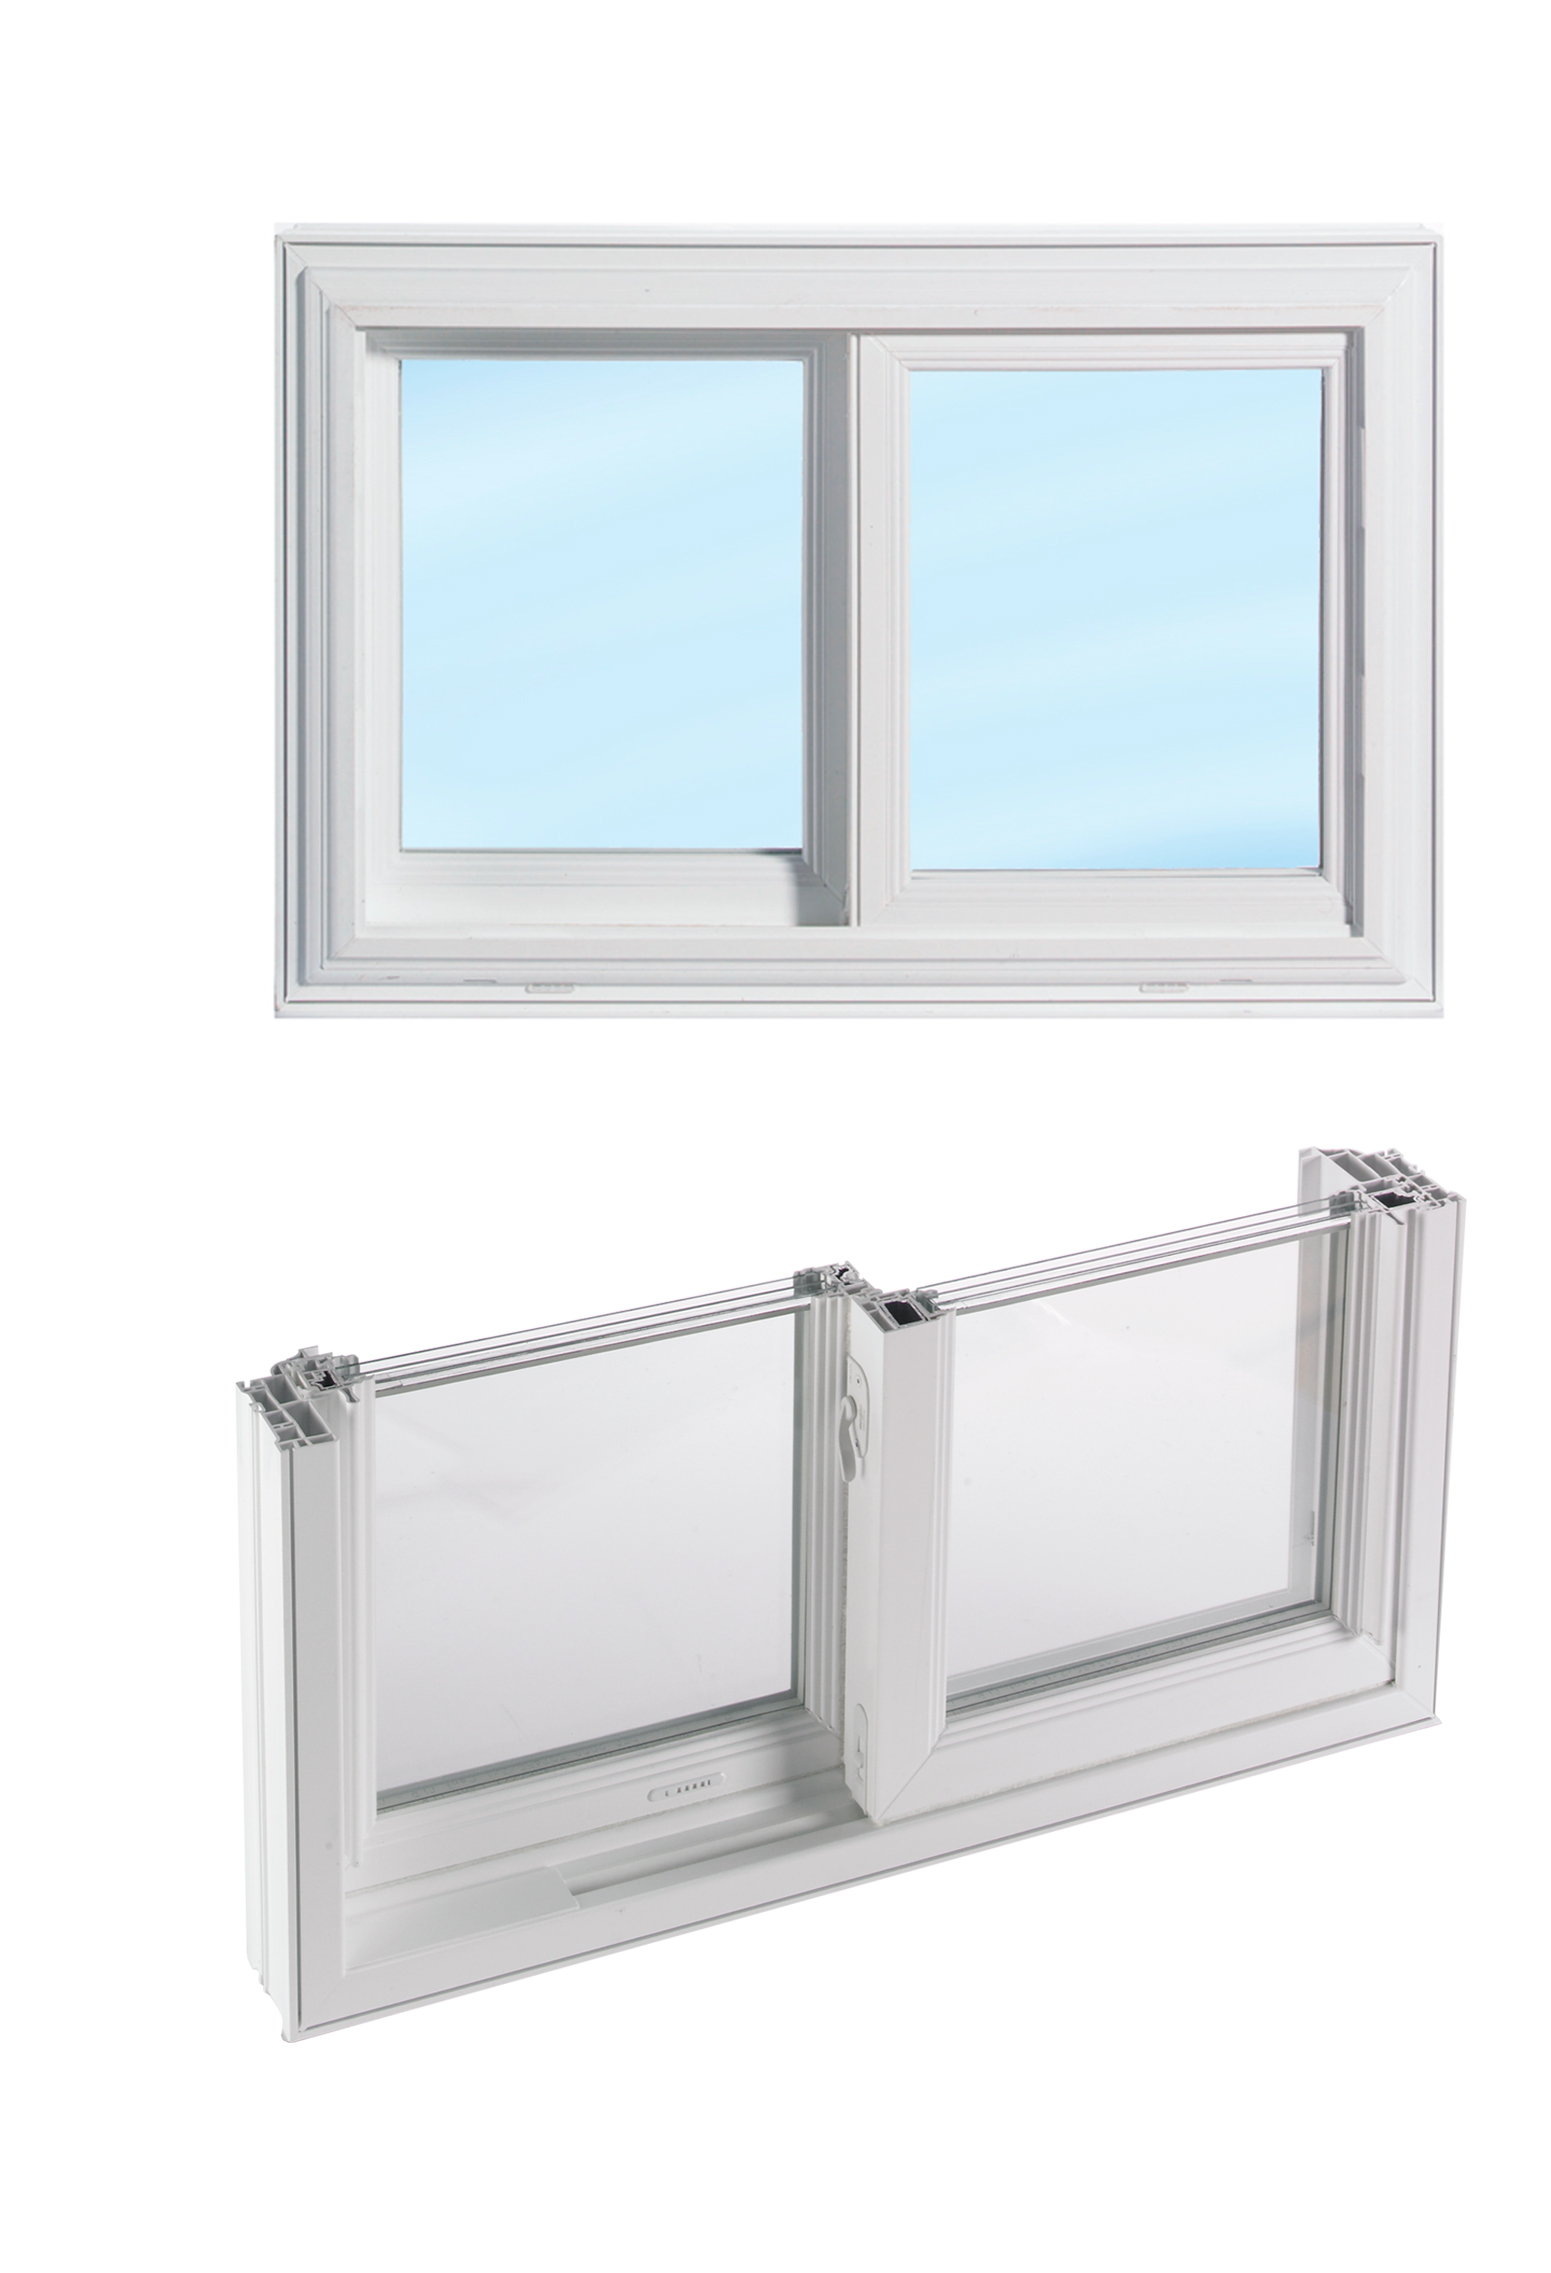 Slider Windows